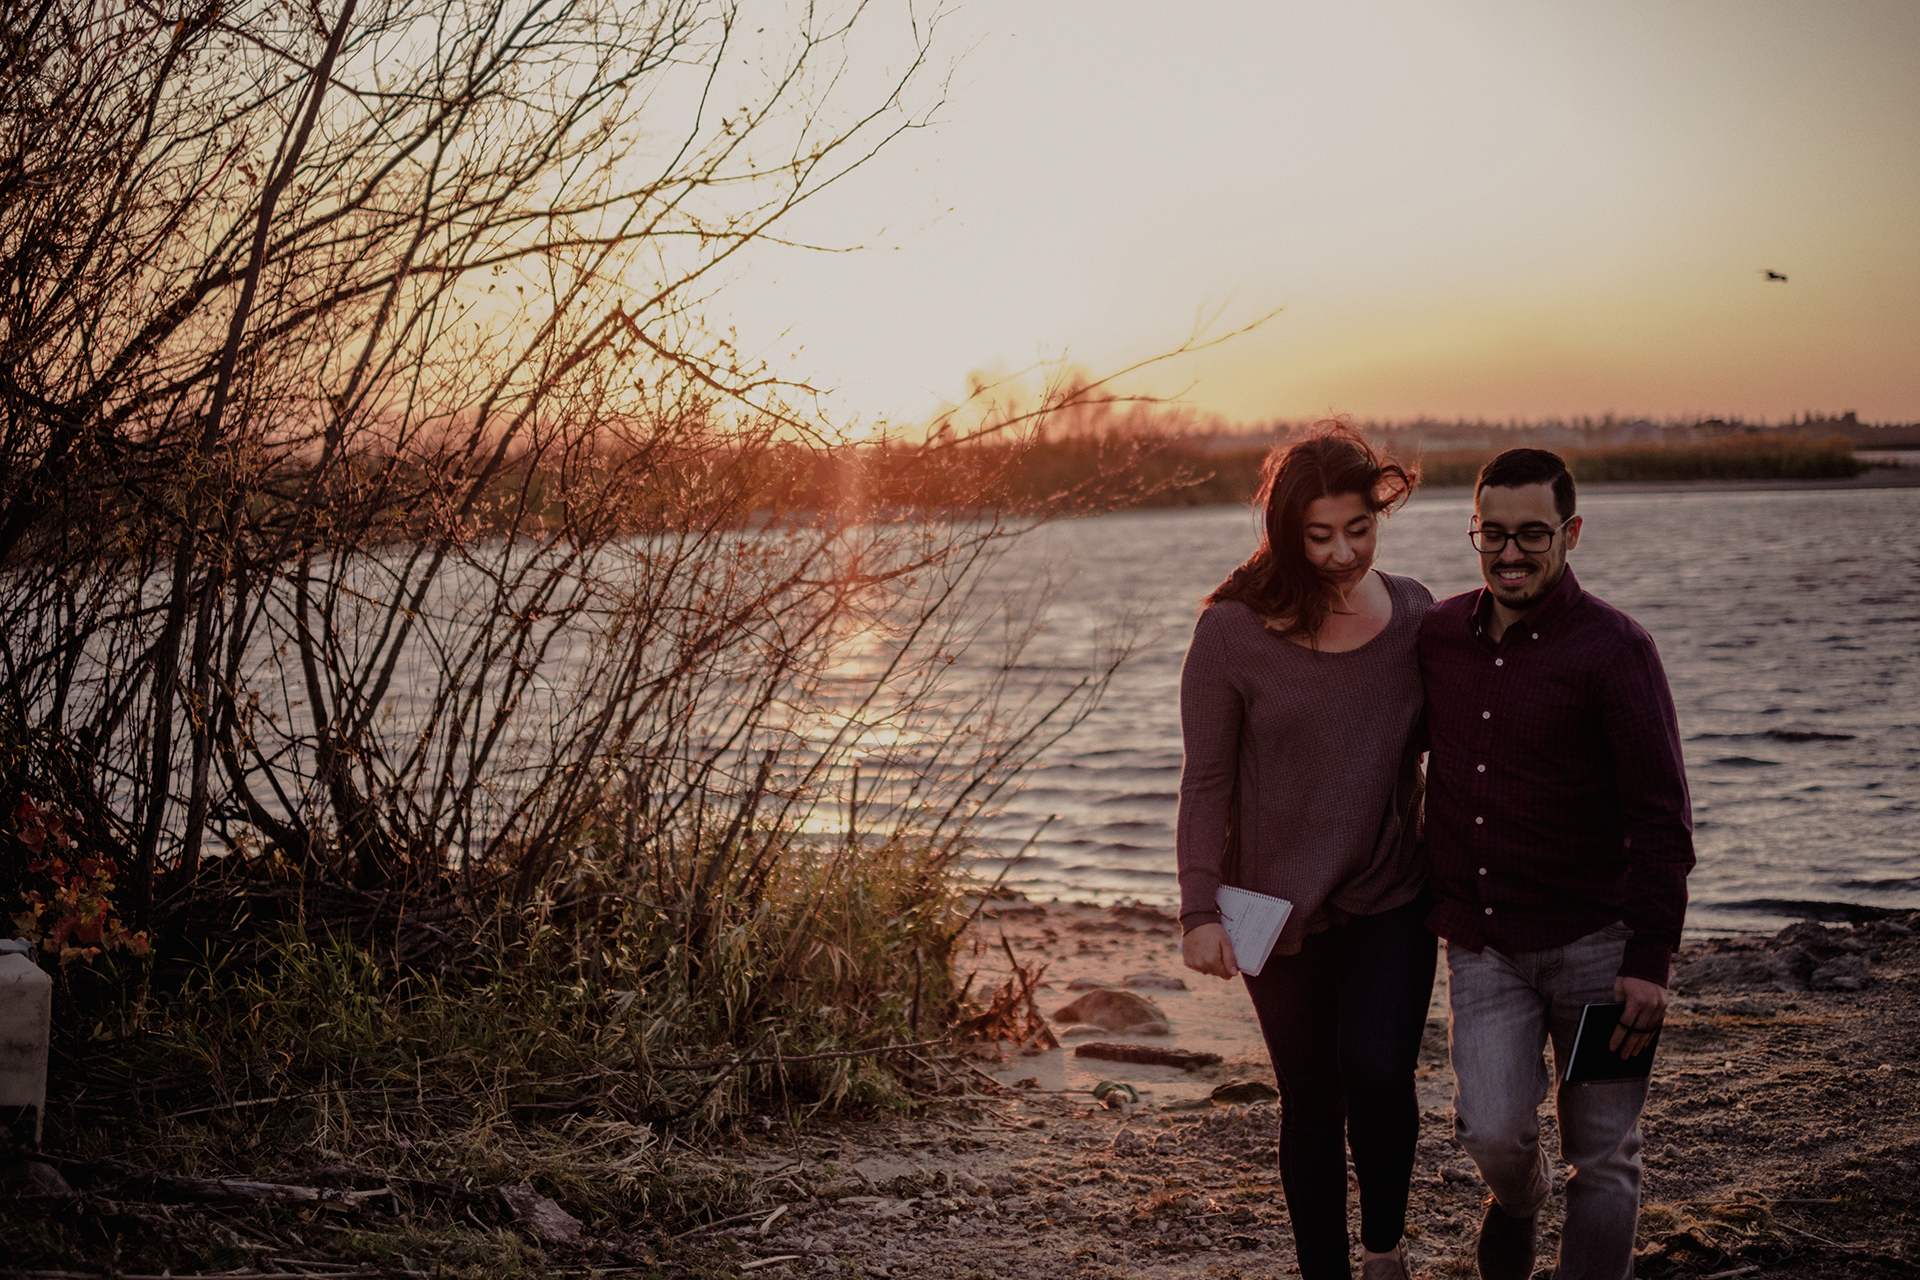 0014-gimli-manitoba-lake-beach-engagement-photographer-daniela-steven.jpg